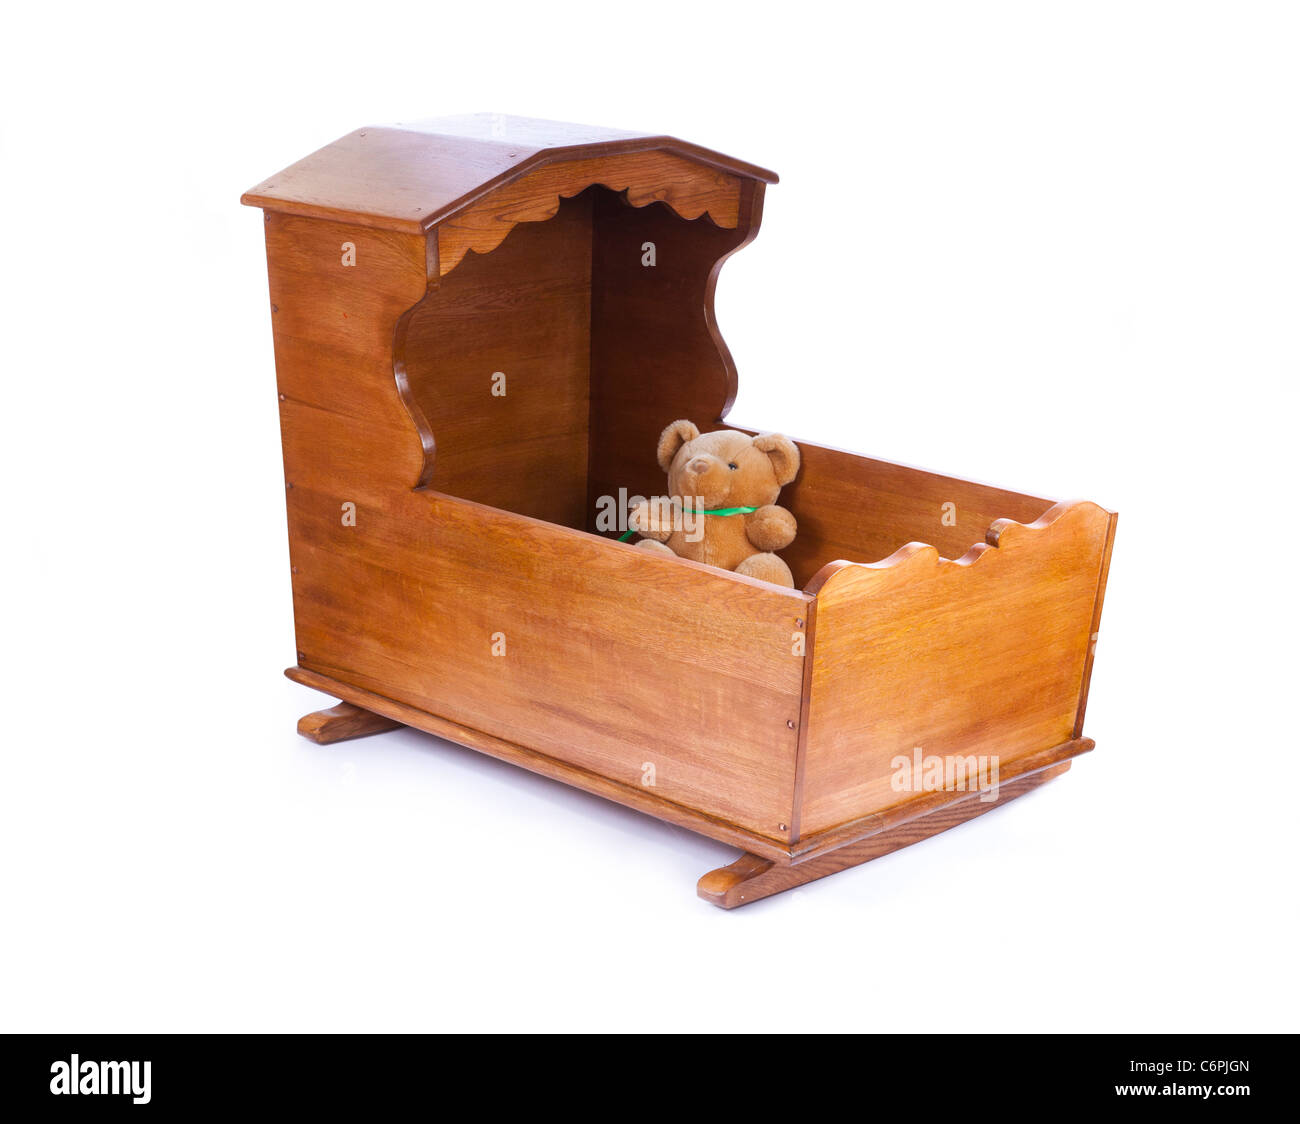 wooden crib cot - Stock Image